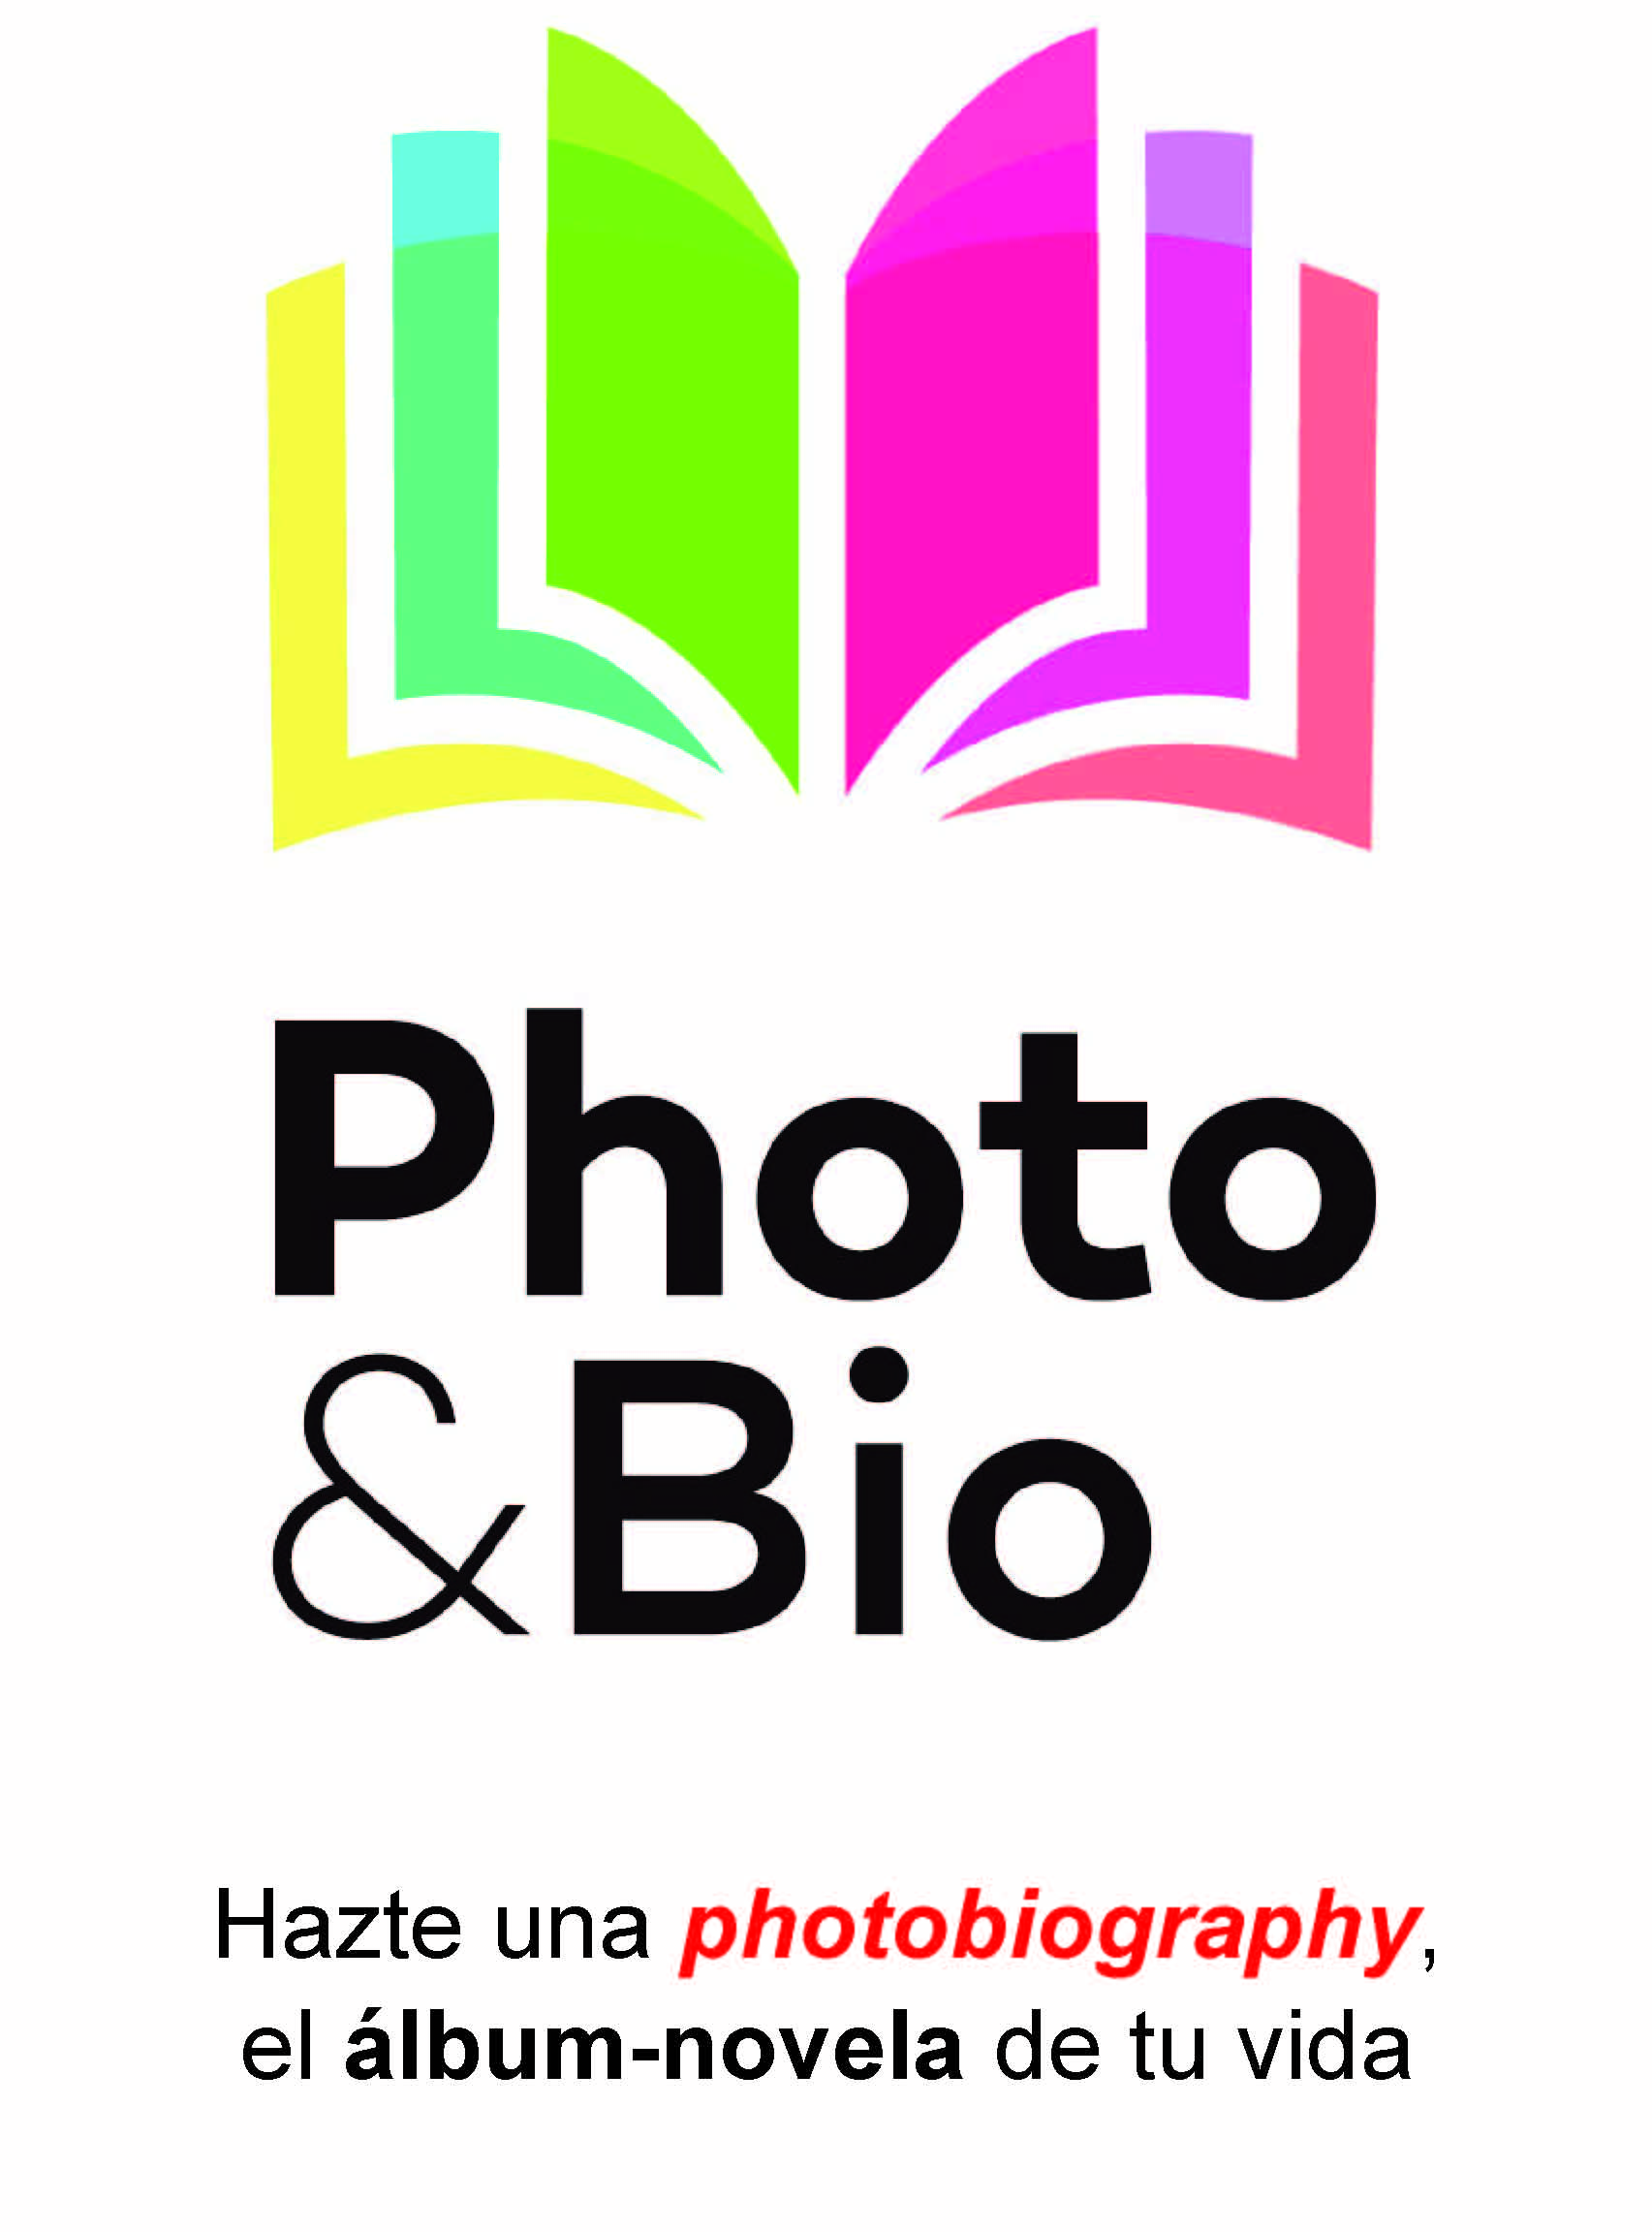 Personal photobiography